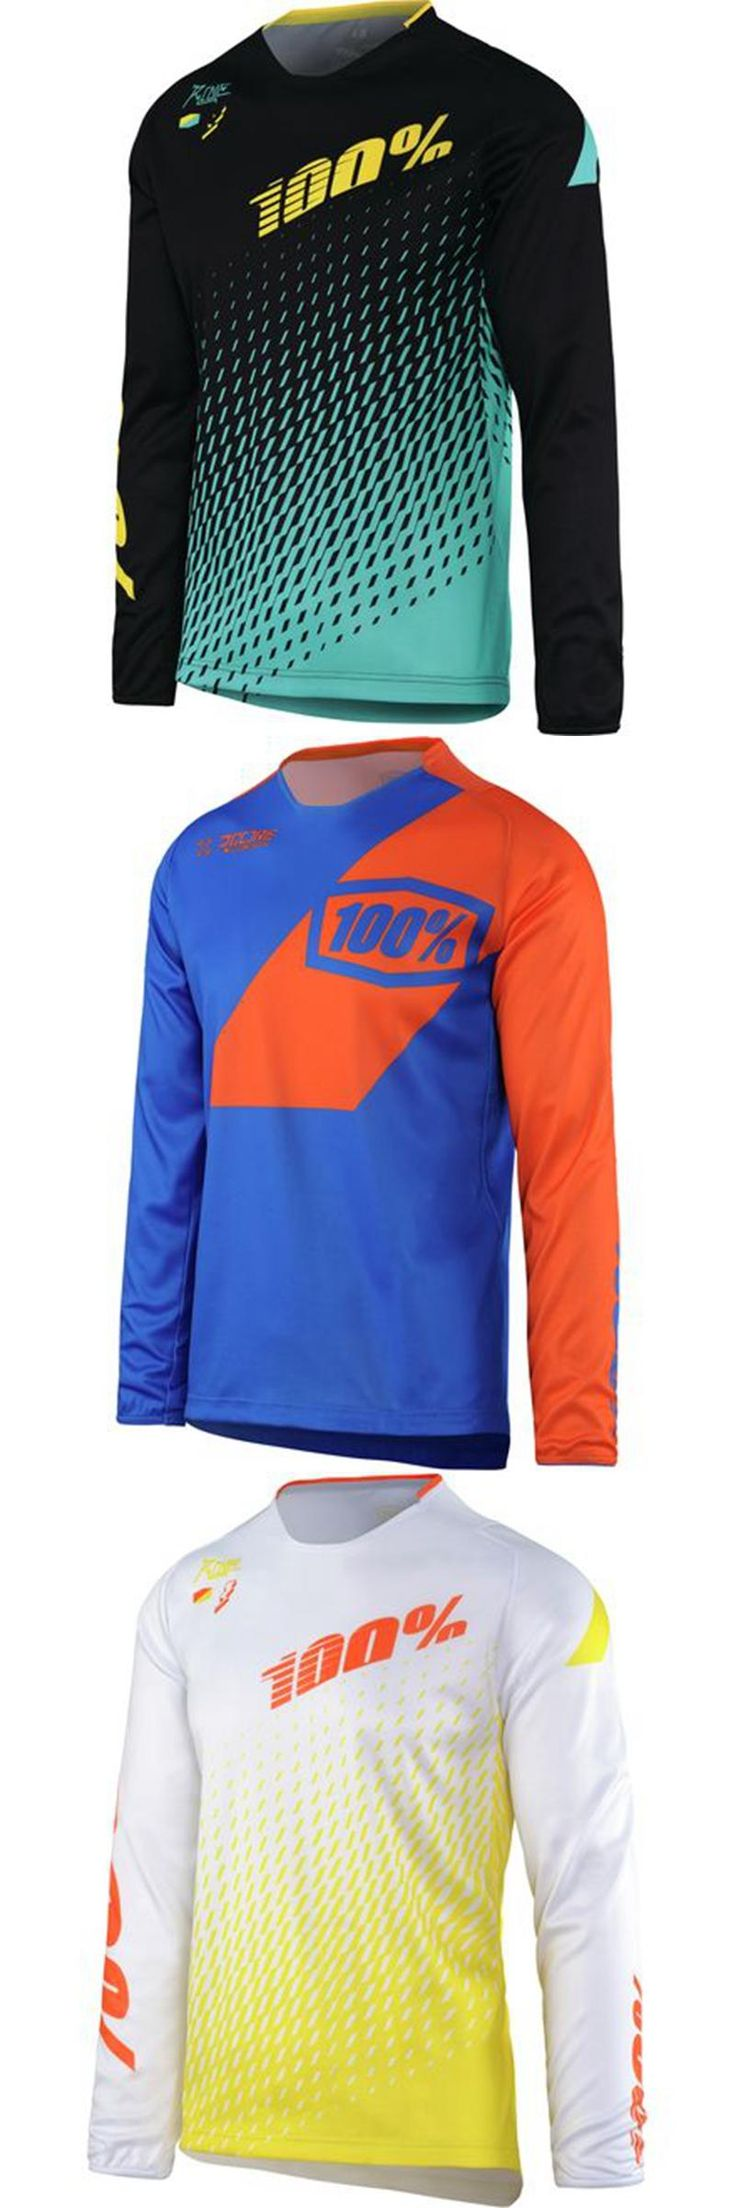 [Visit to Buy] 2017 100% DH JERSEY downhill Bike long sleeve cycling Jersey MX RBX moto Off-road Motocross shirt maillot ciclismo MTB  #Advertisement